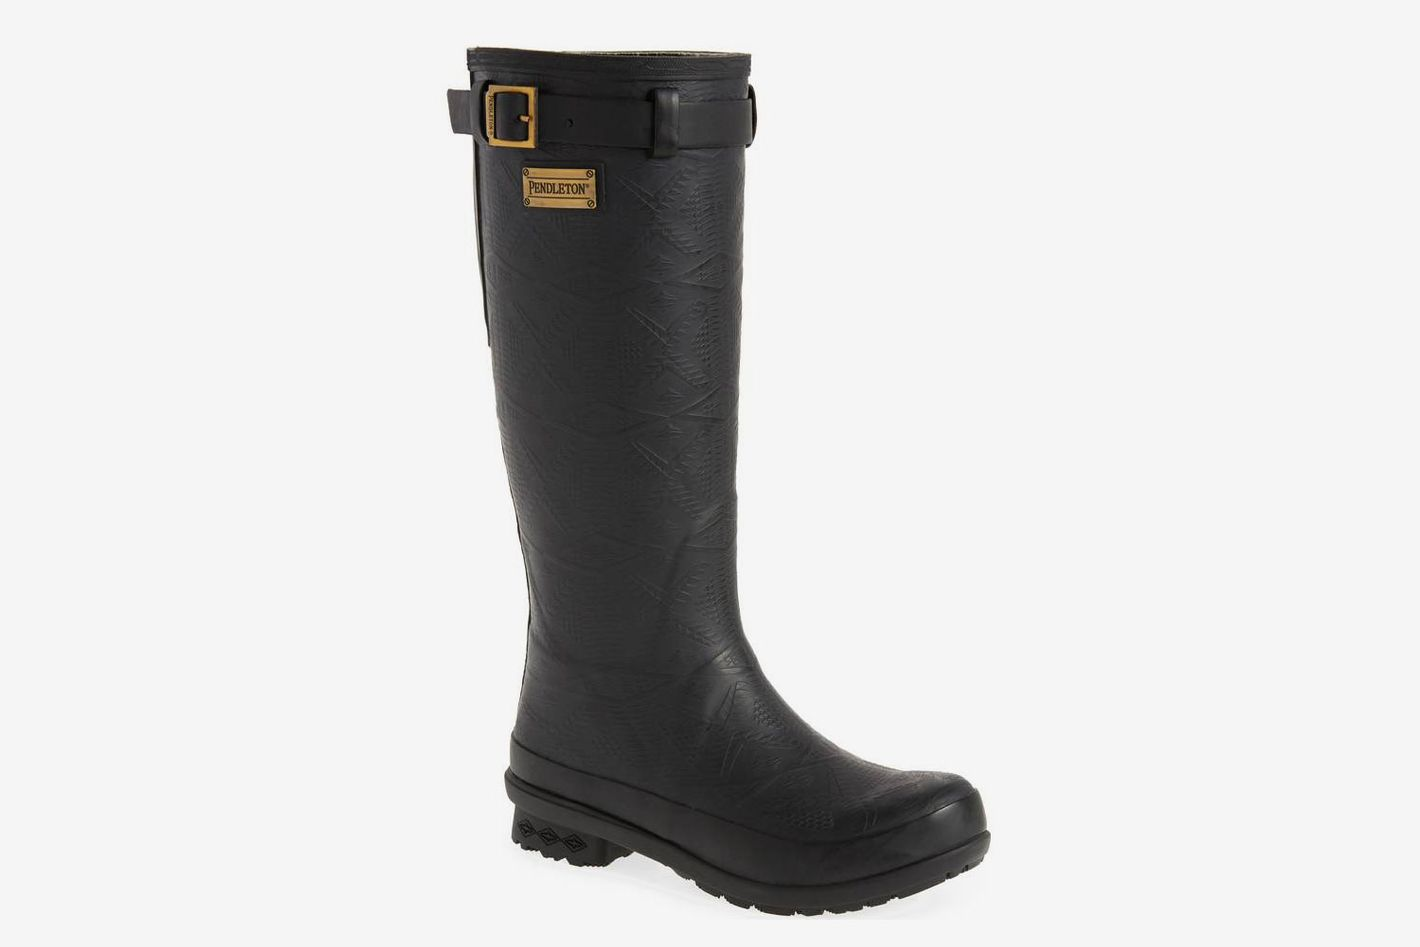 1b7c2c2f6b12 7 Pairs of Rain Boots for Wide Calves